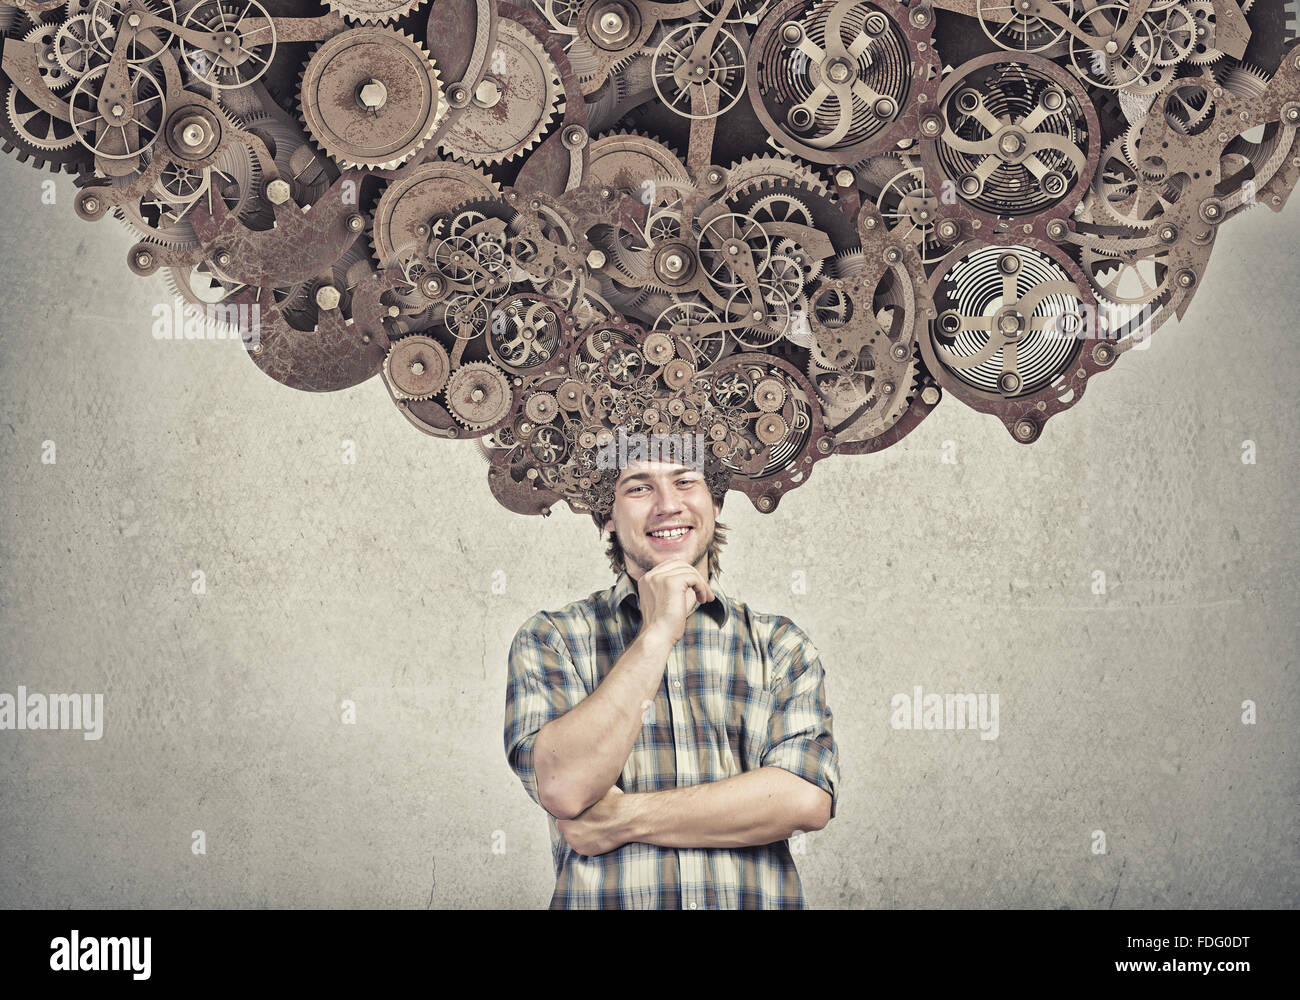 Thoughtful guy with gear mechanisms above his head - Stock Image